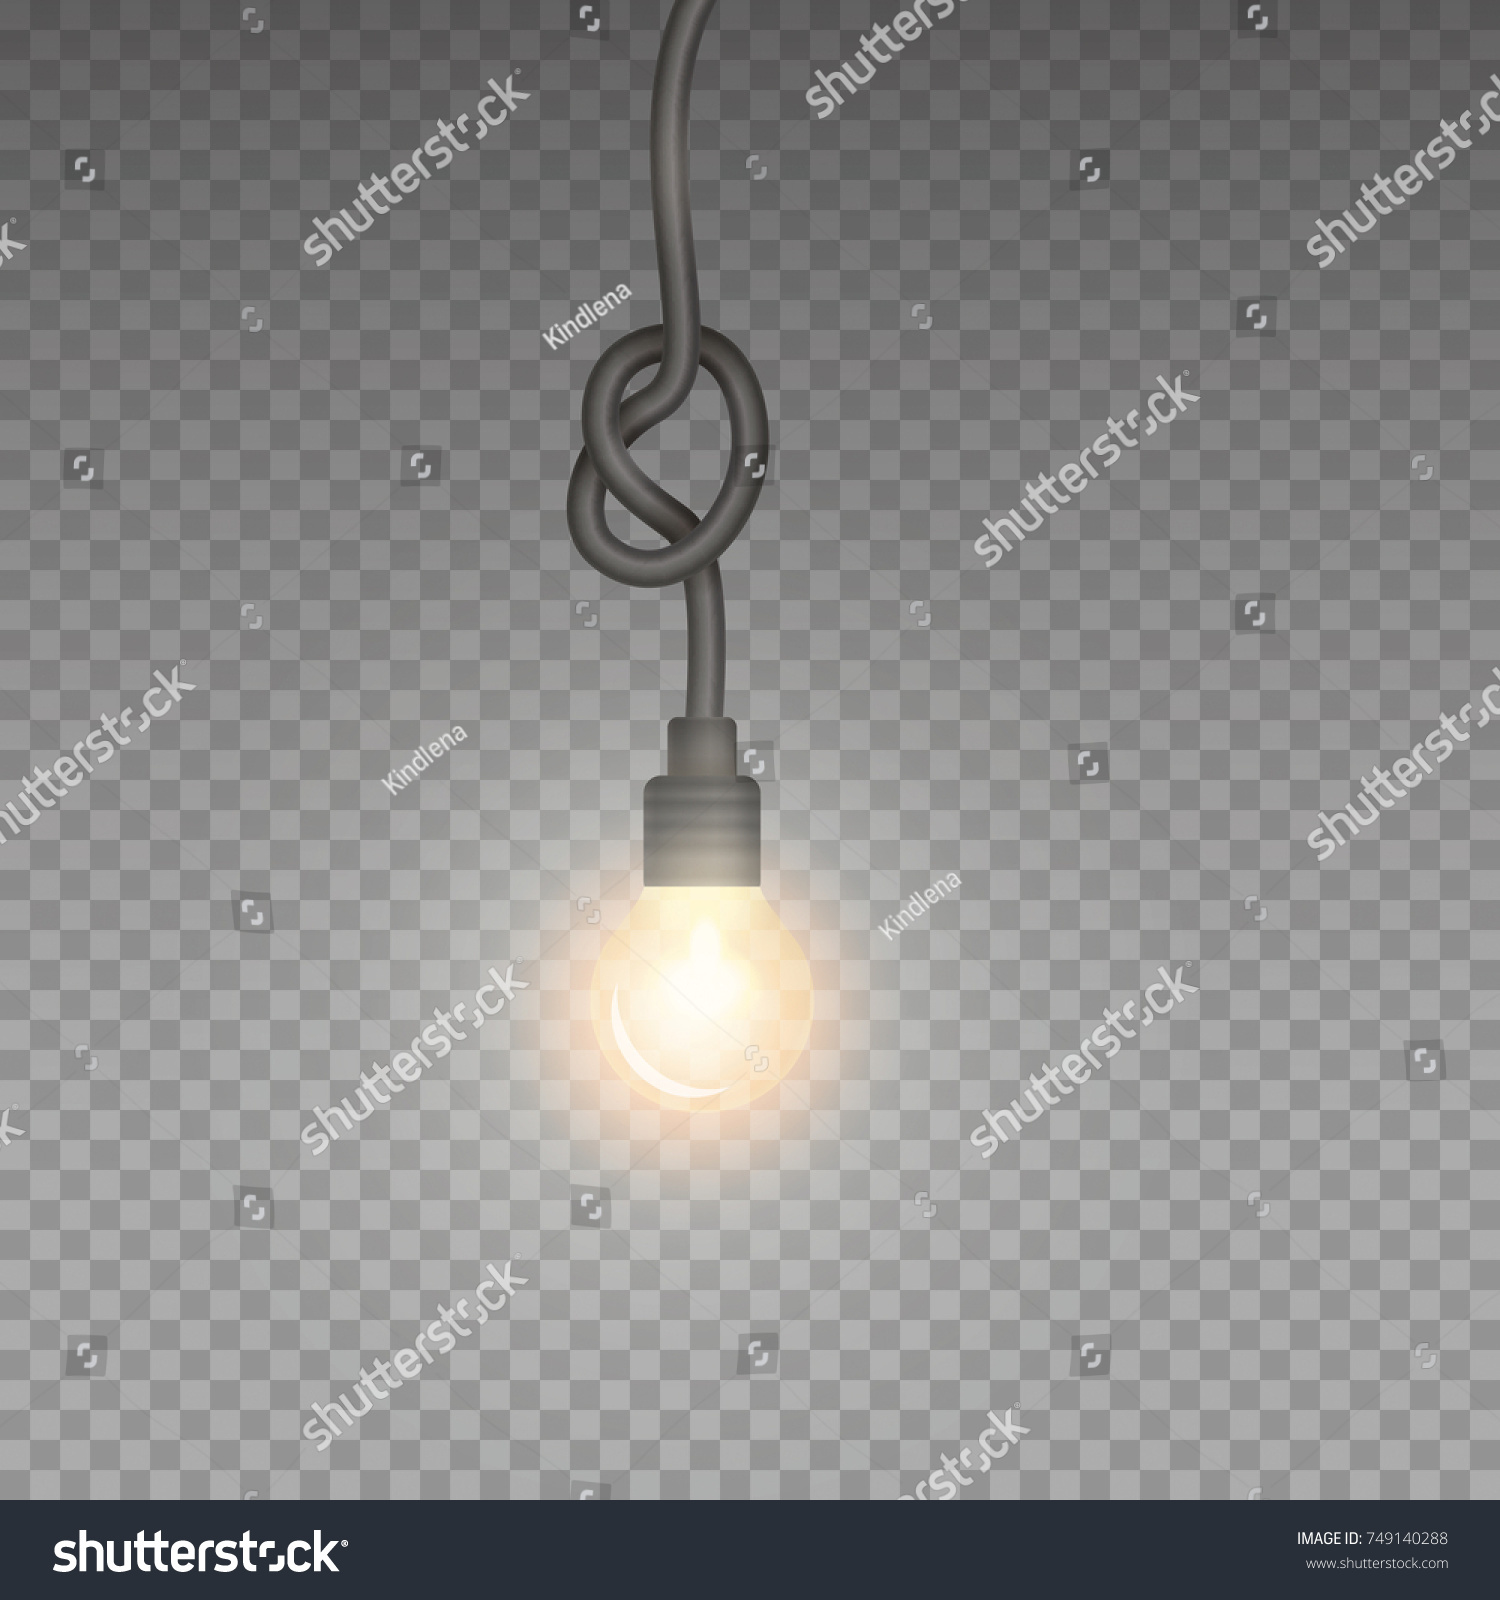 Bulb yellow light with knot cable isolated on transparent background. Vector glowing glass halogen l&  sc 1 st  Shutterstock & Bulb Yellow Light Knot Cable Isolated Stock Vector 749140288 ... azcodes.com